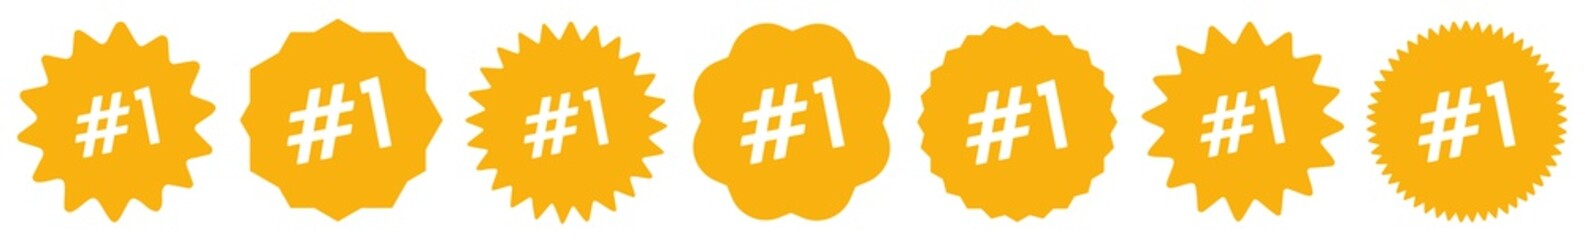 Number 1 Tag Orange | No 1 Icon | Sticker | Label | Variations